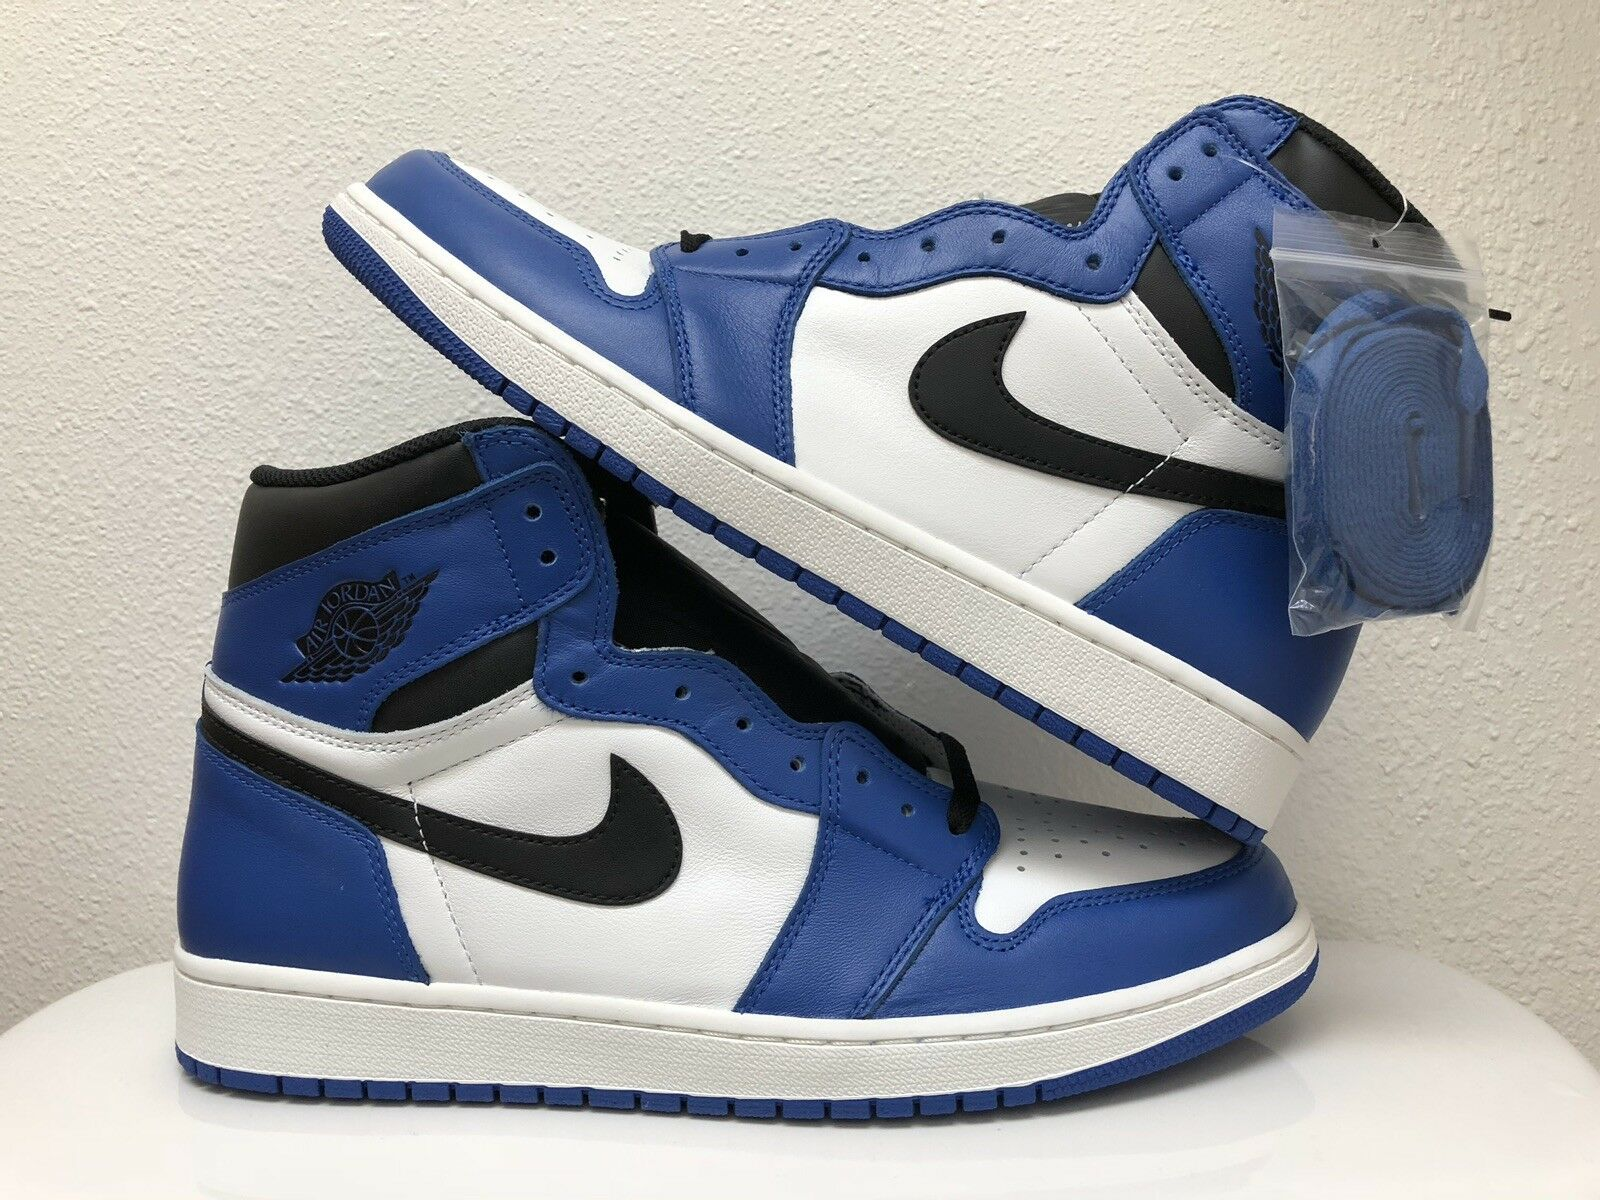 Nike Air Jordan 1 I Retro Game Royal Brand New Men's Size 12 Dead Stock Ds